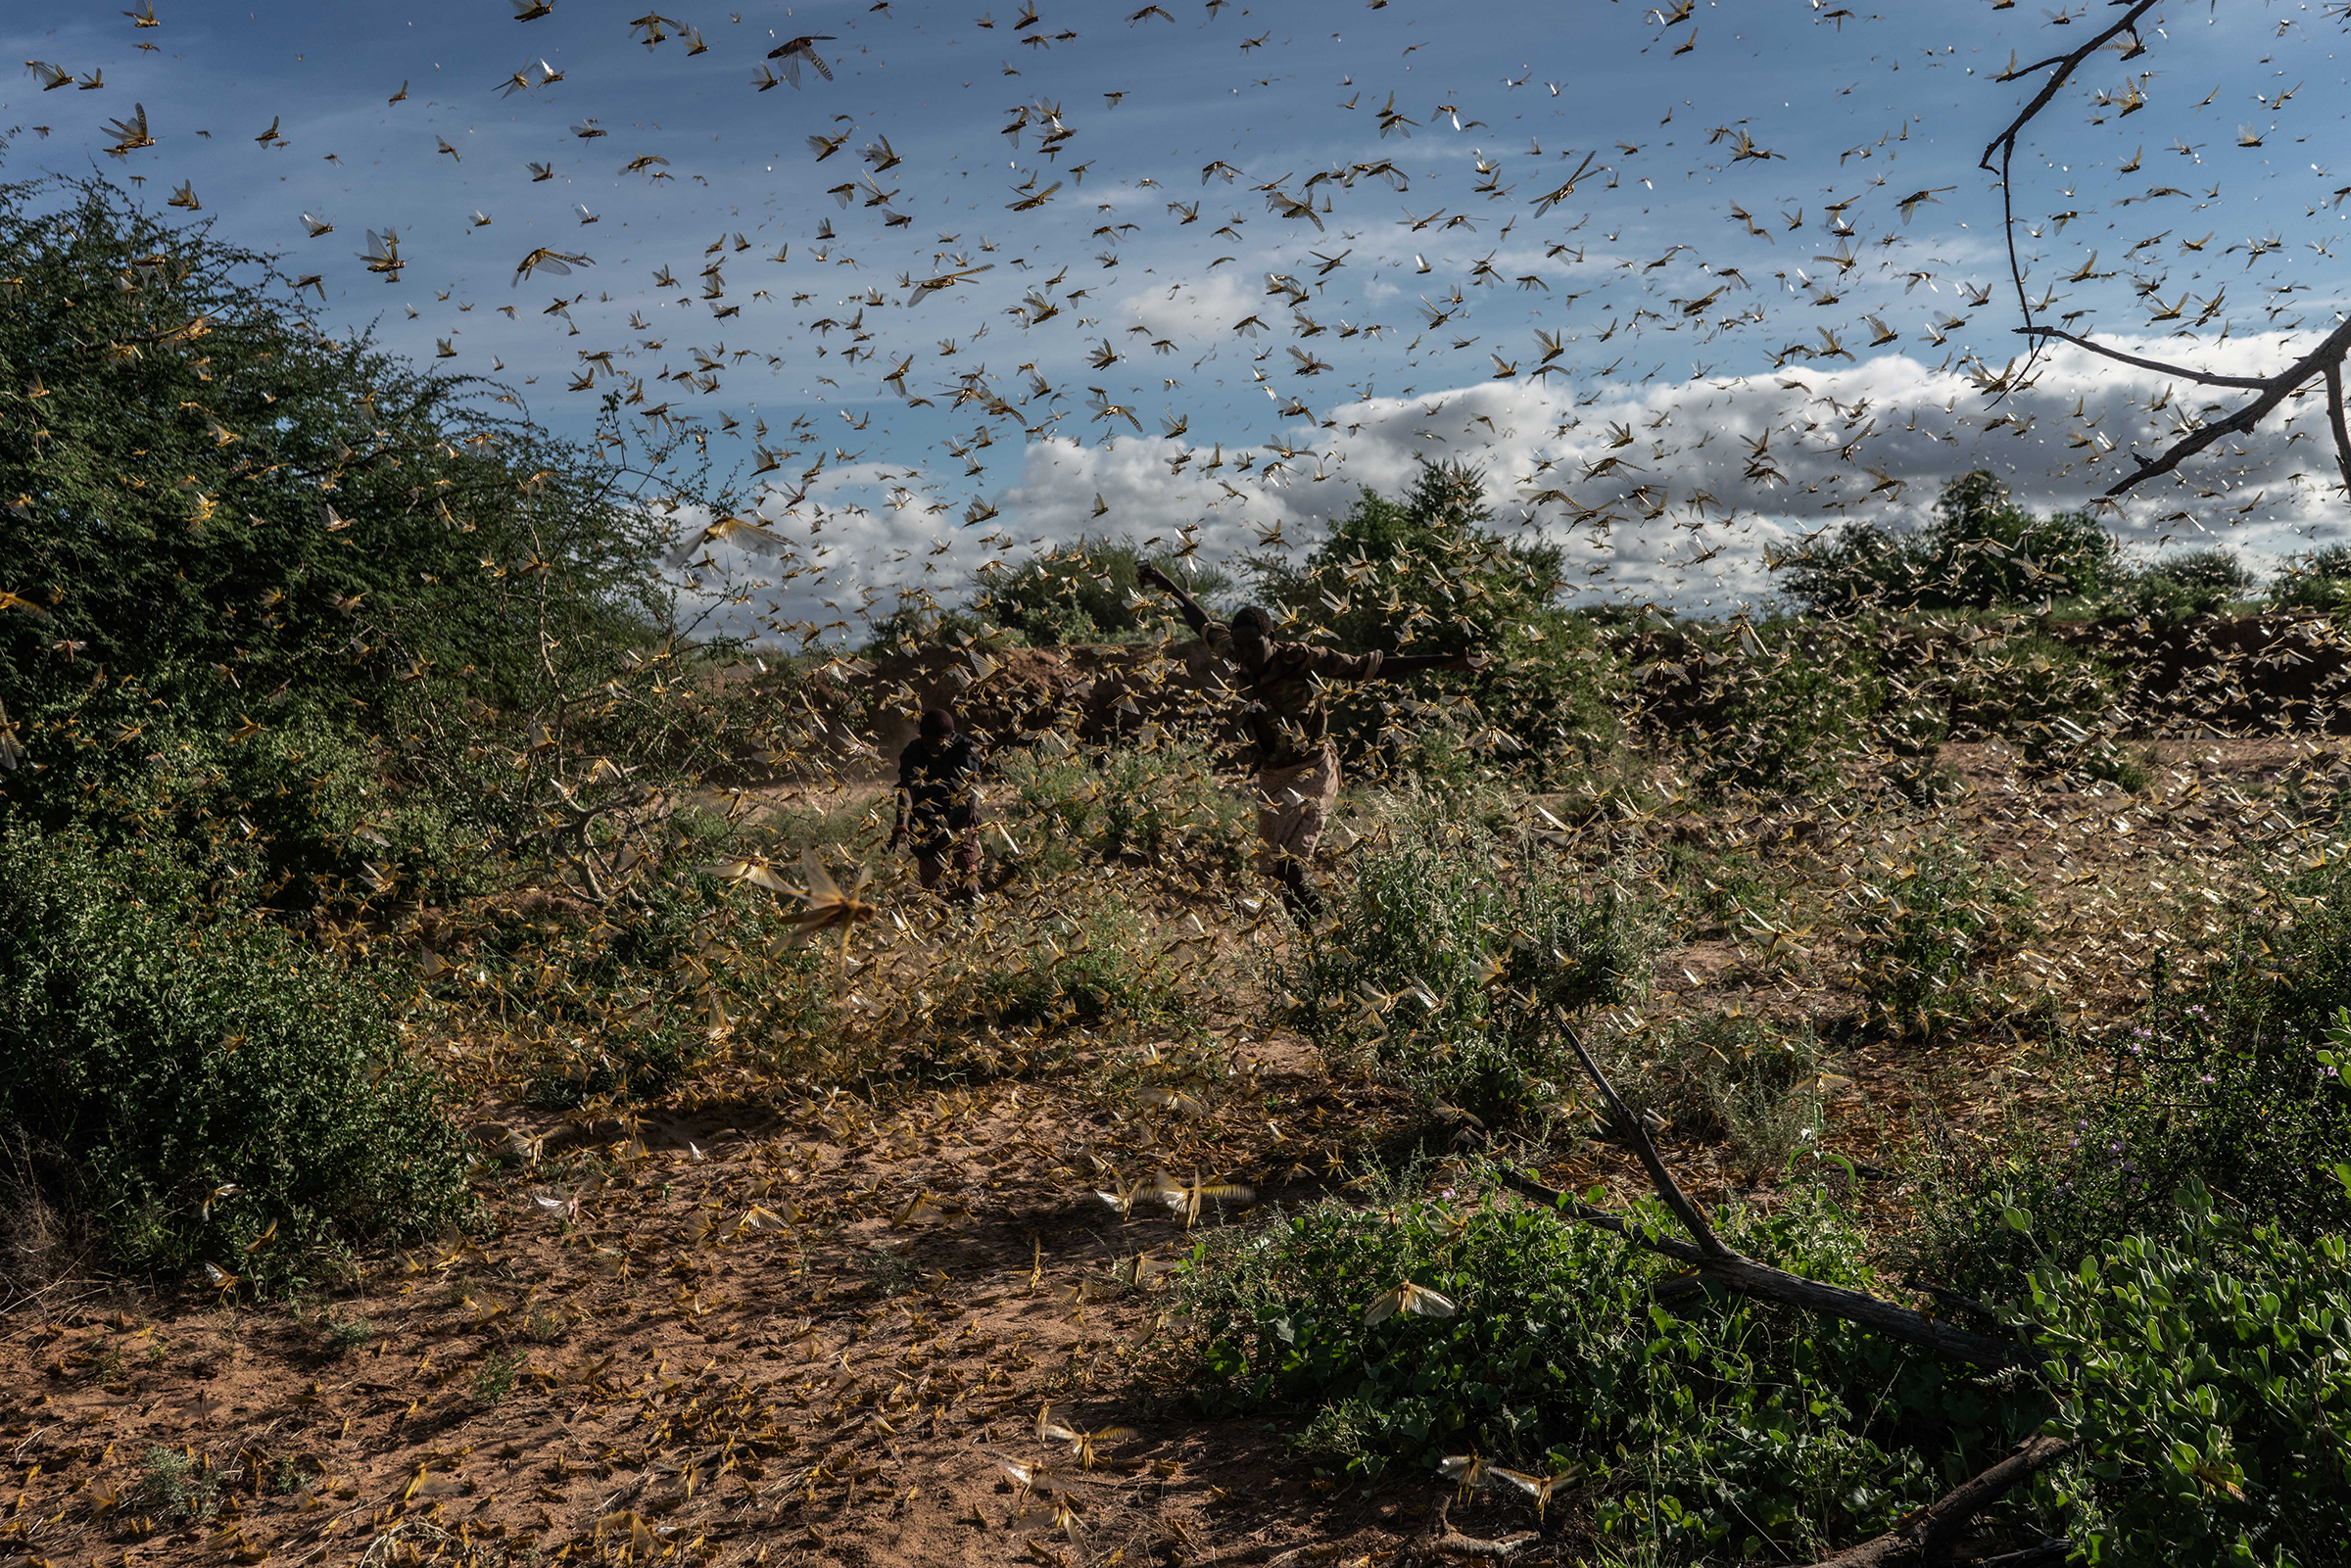 Two men chase away a swarm of desert locusts early in the morning, on in Samburu County, Kenya on May 21, 2020.